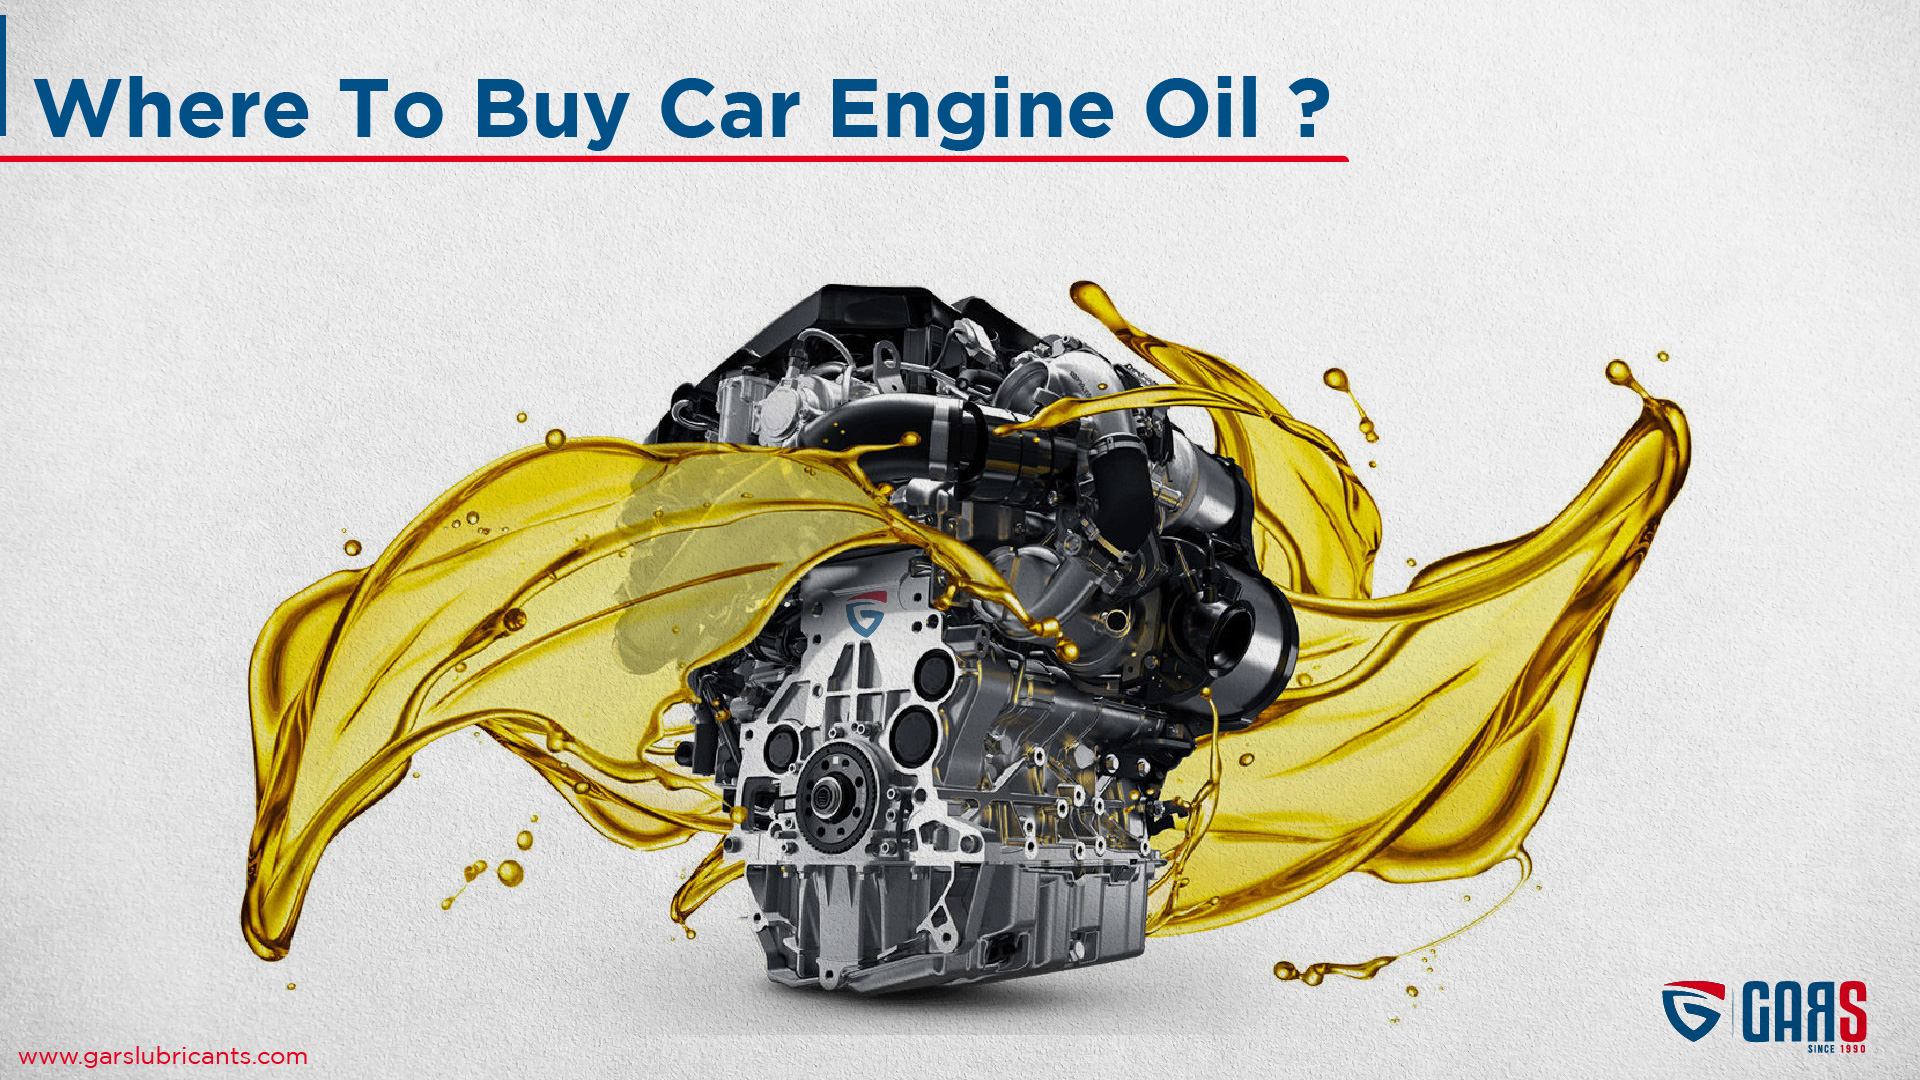 Where To Buy Car Engine Oil?